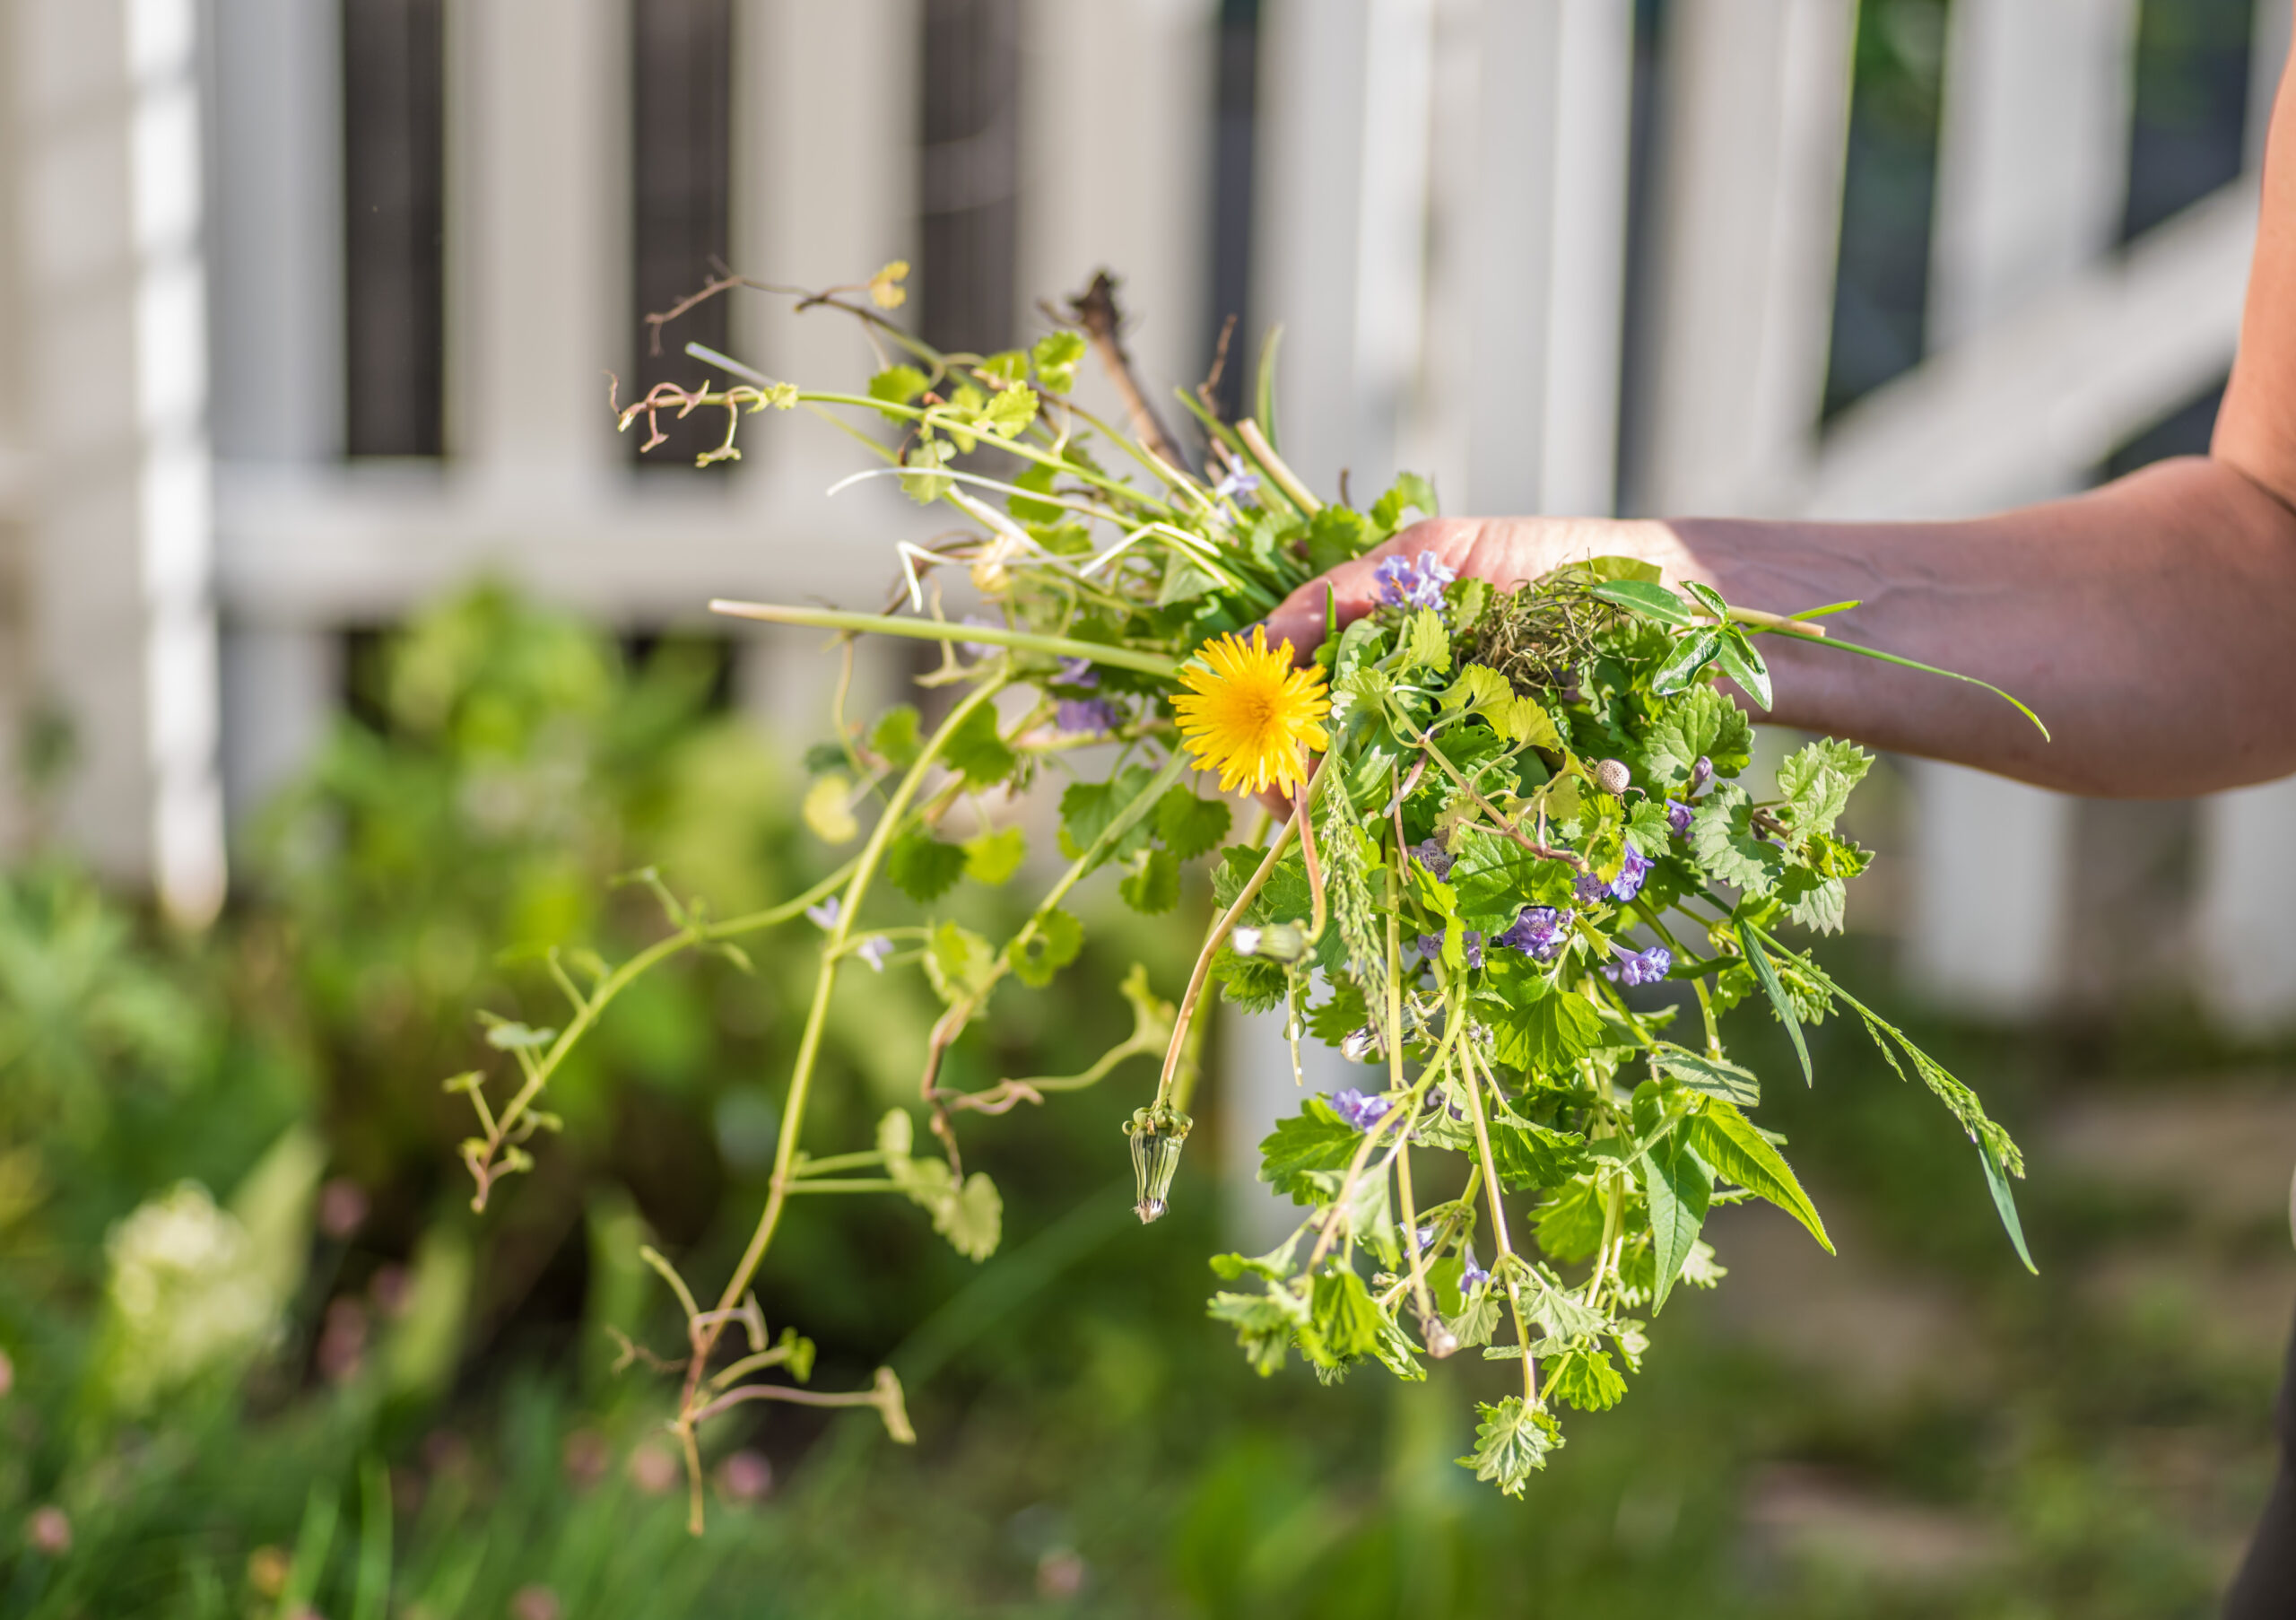 Grow your grass longer to prevent weeds